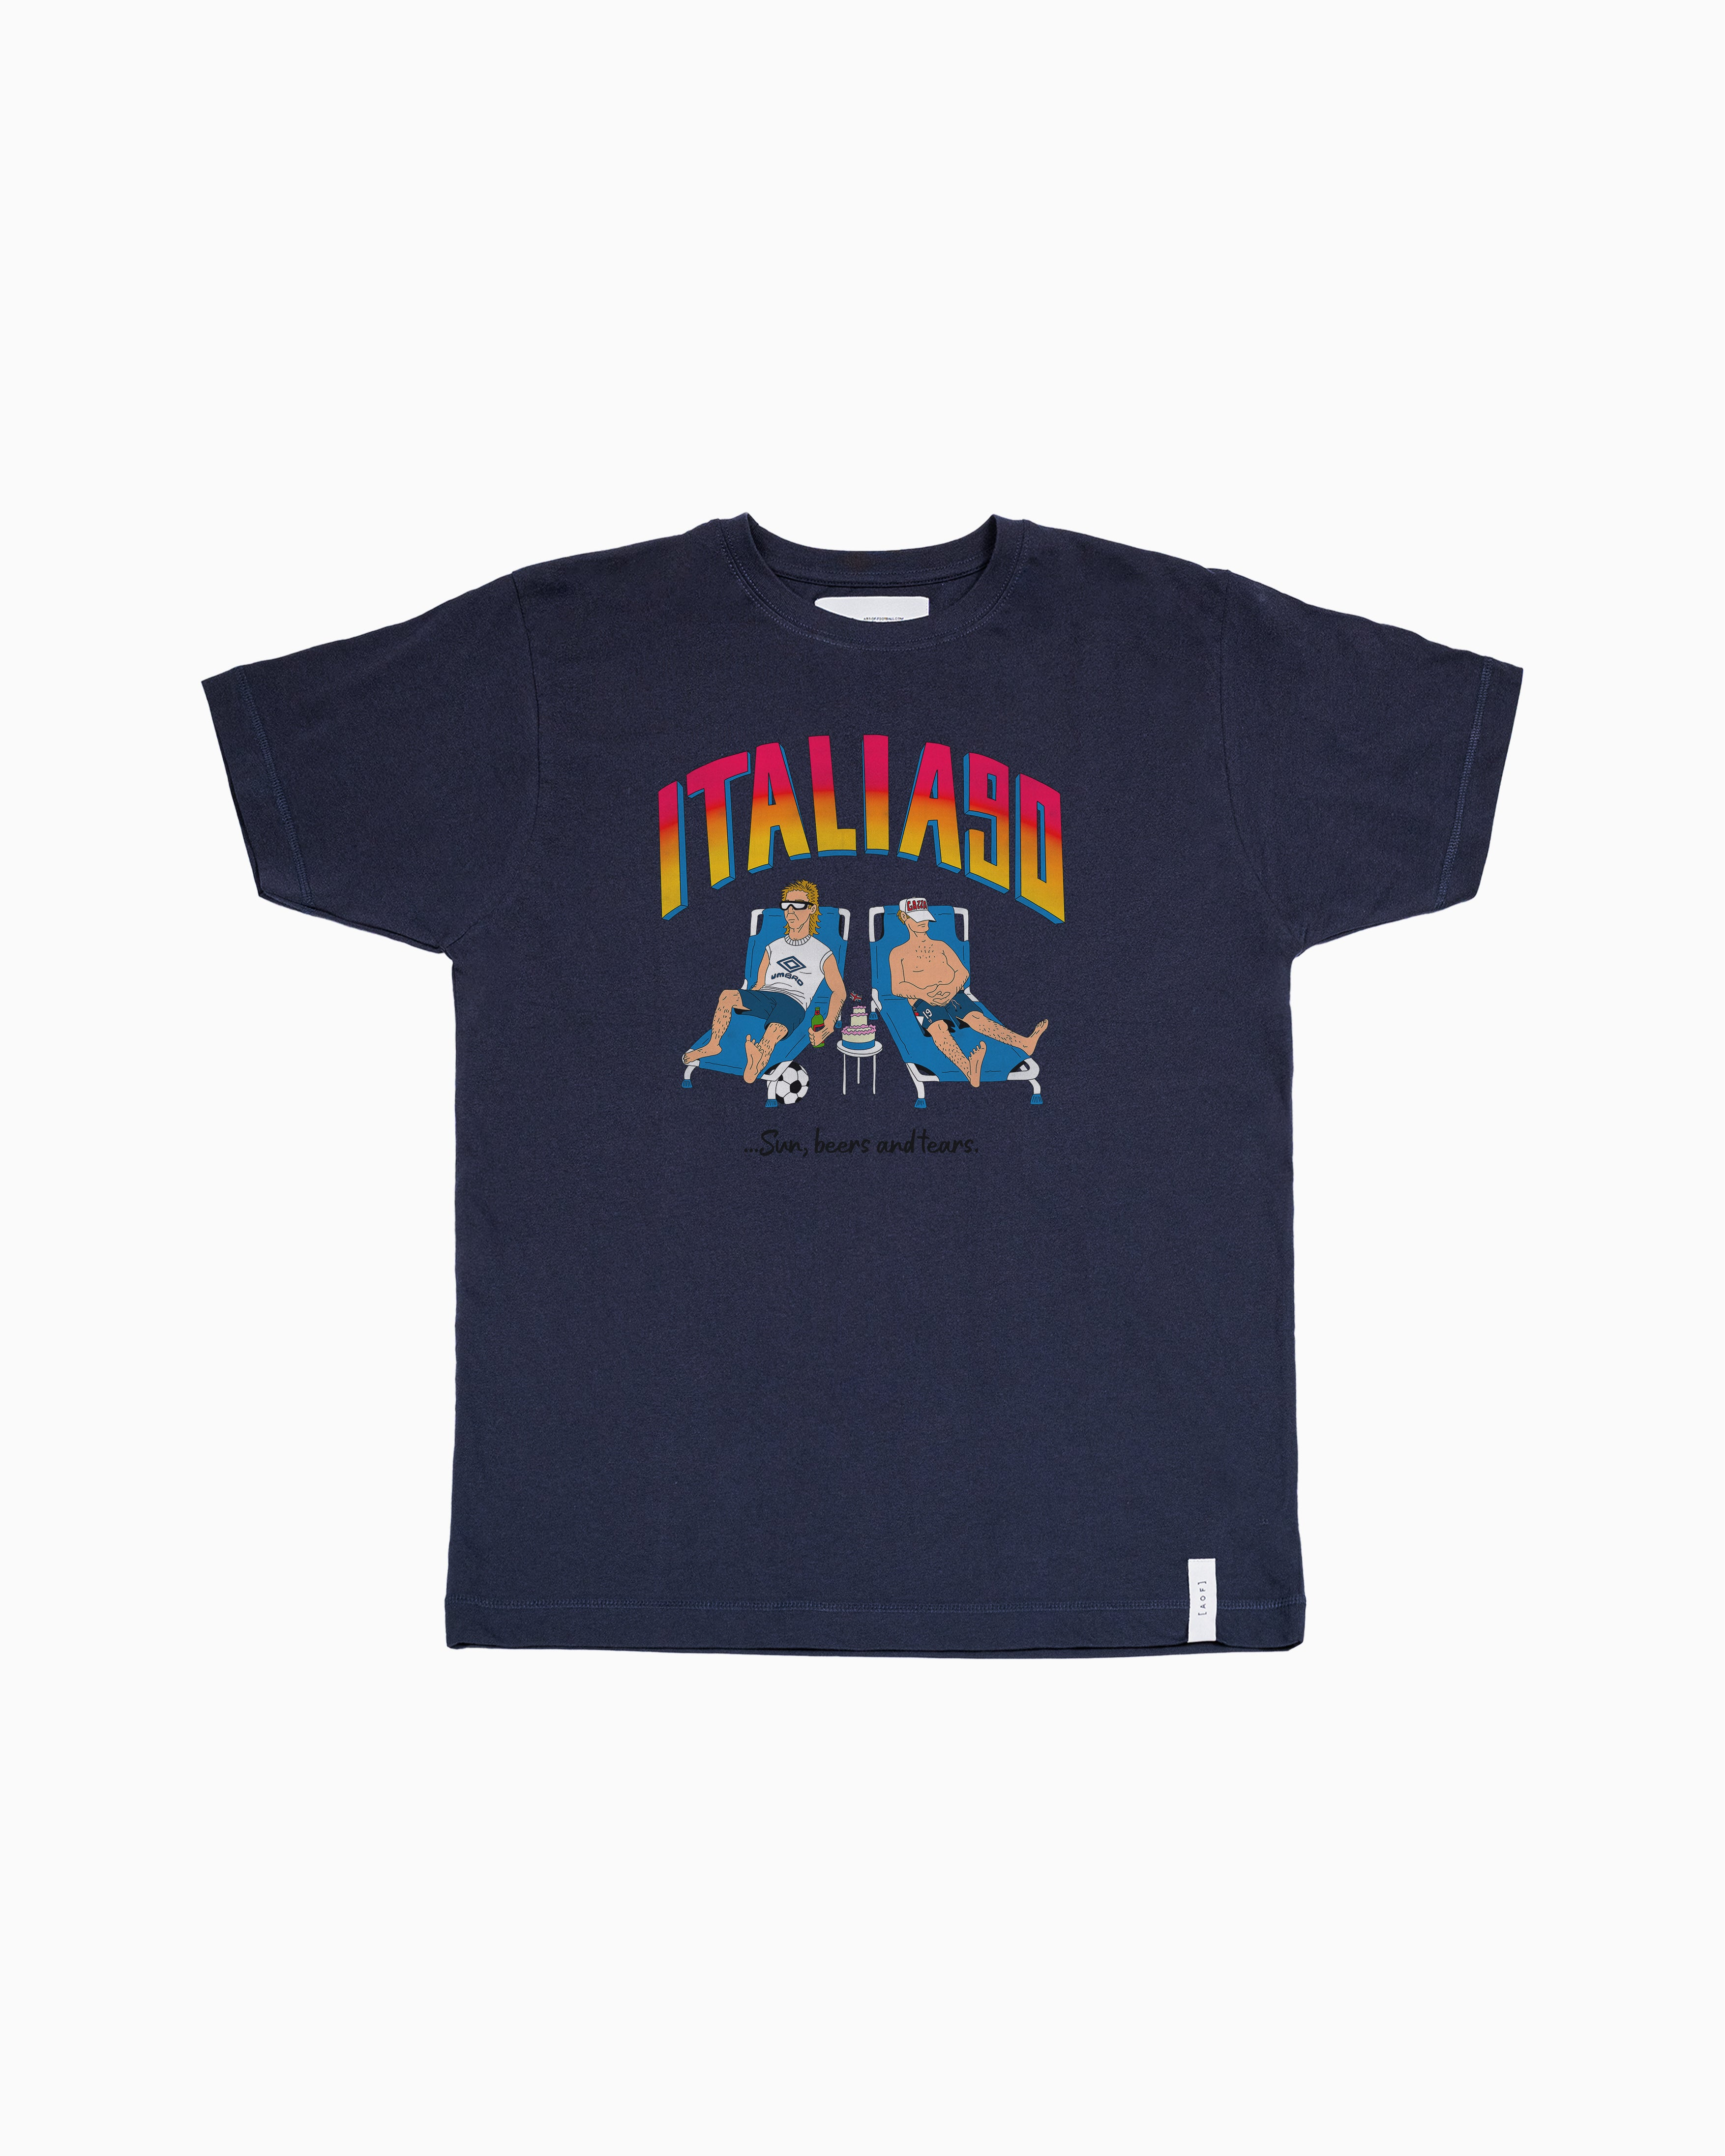 Italia '90 - Tee or Sweat